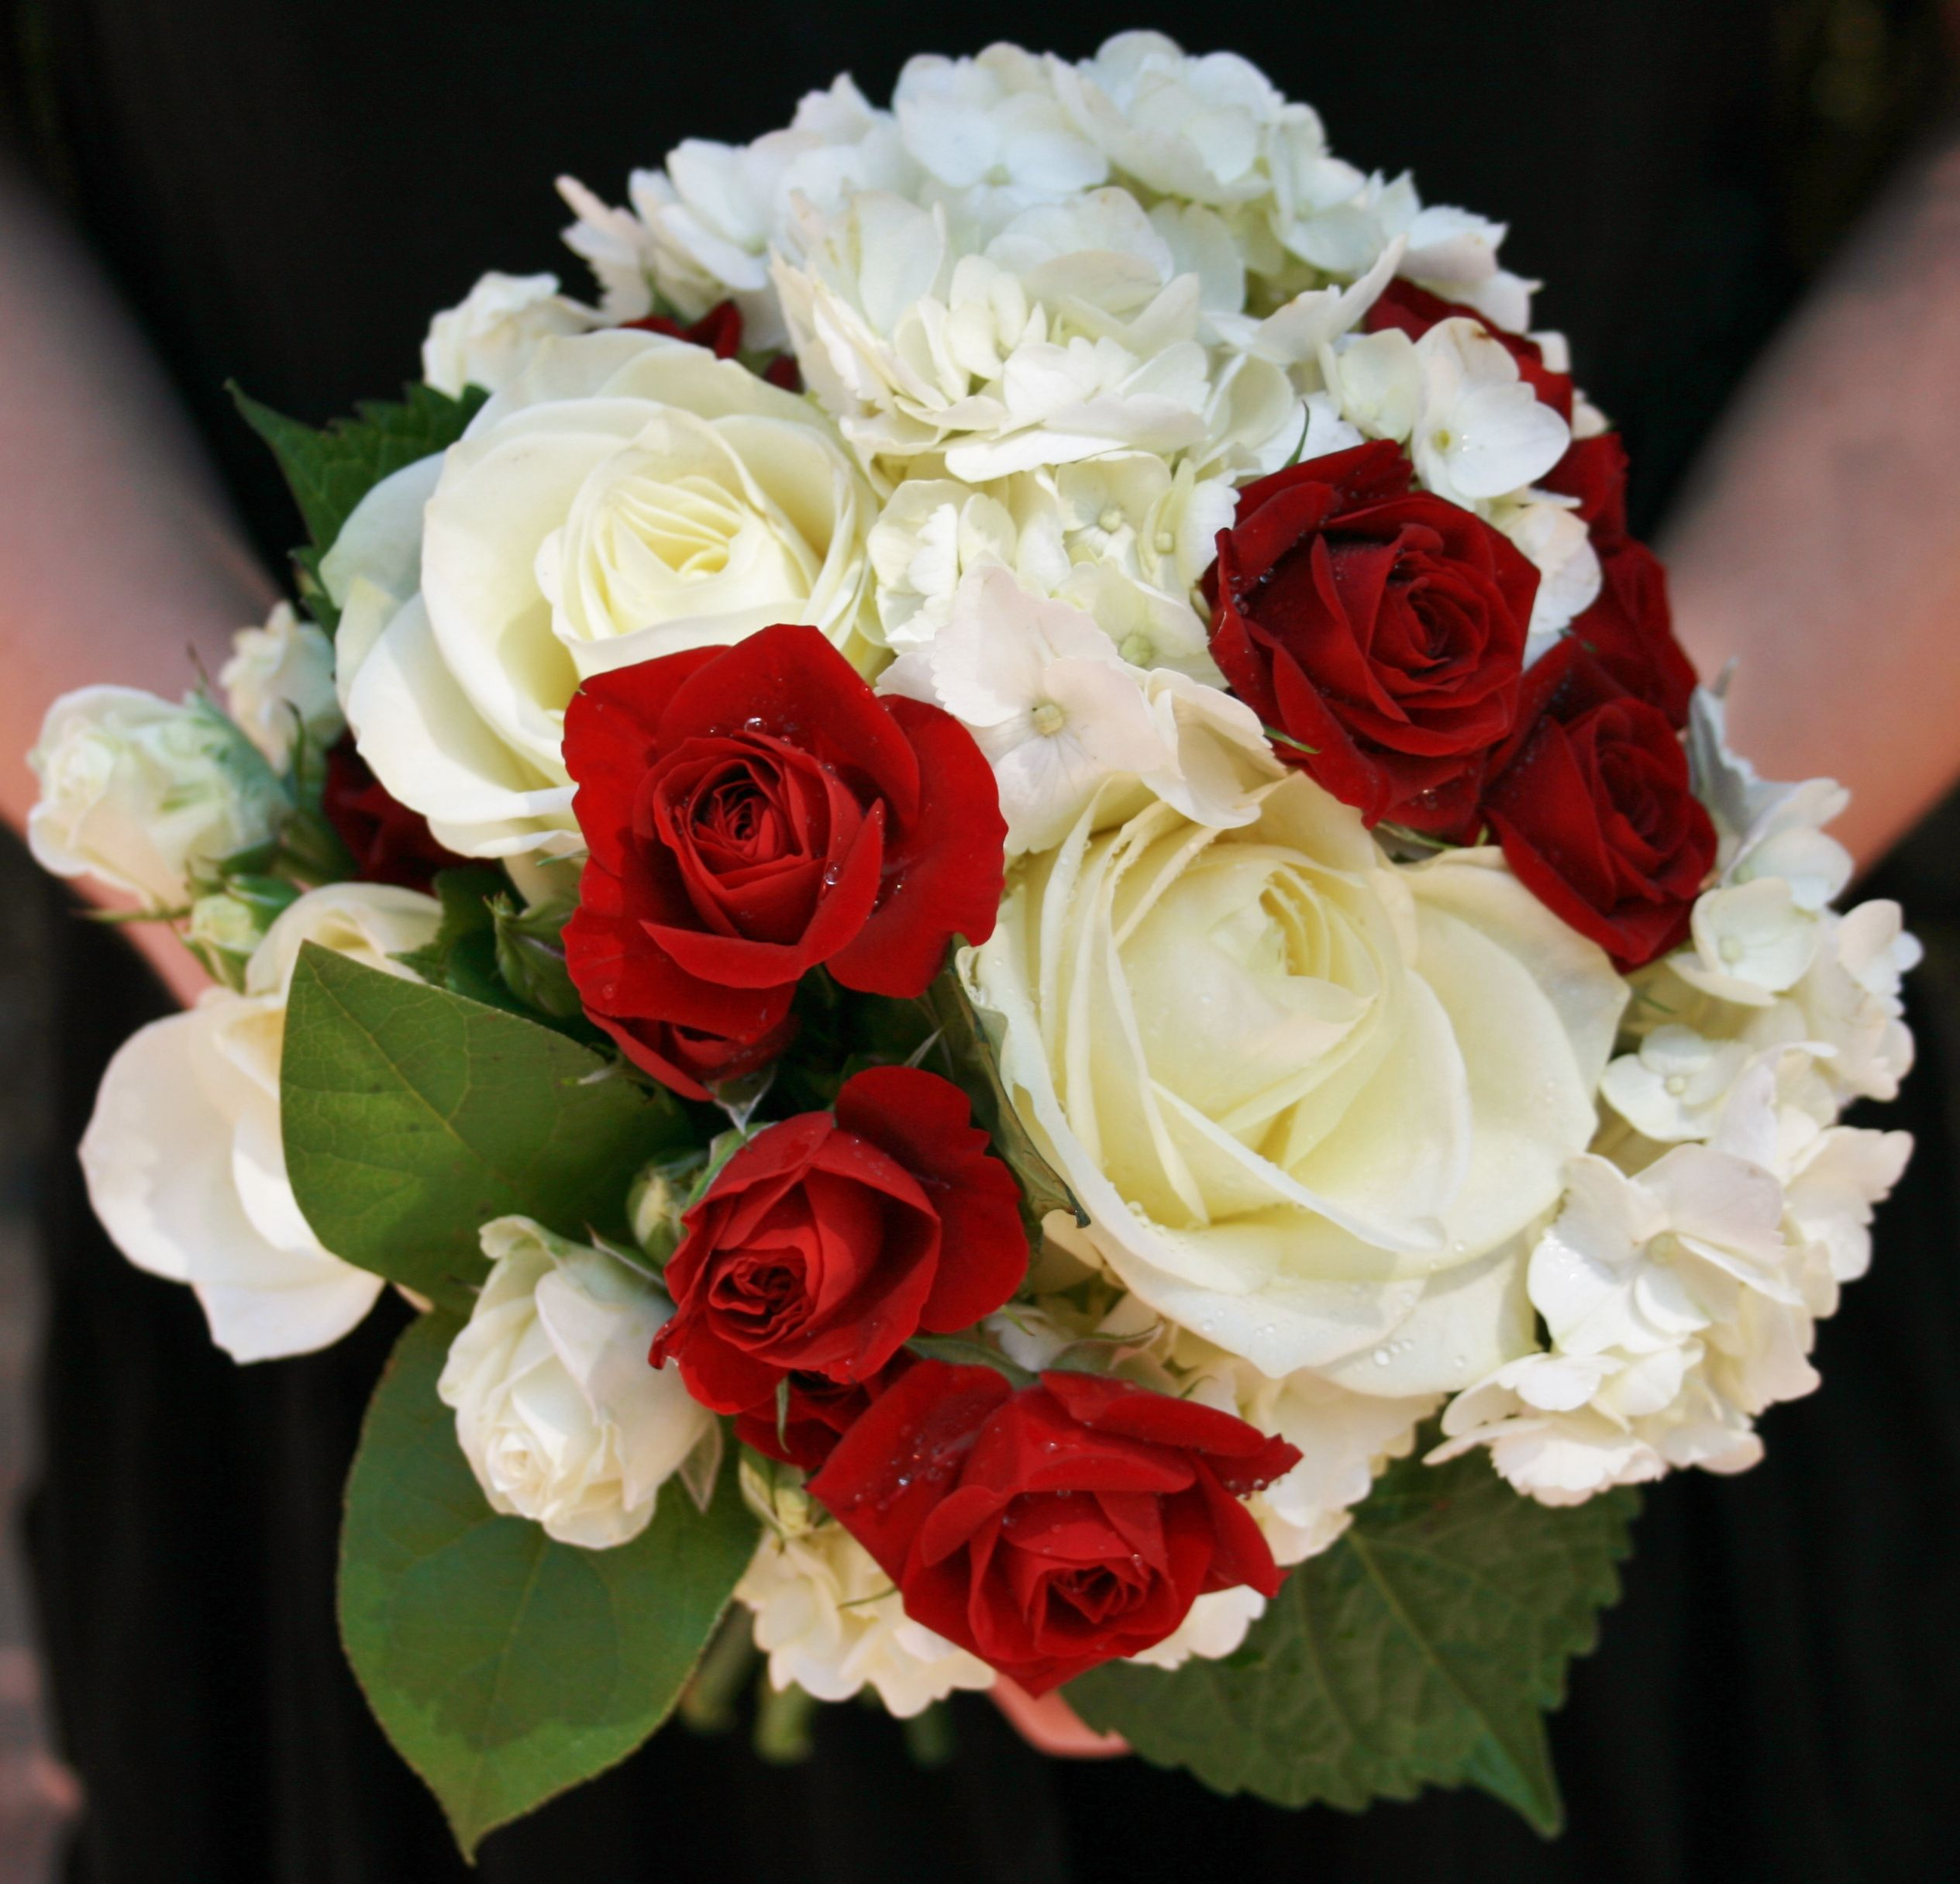 White Hydrangea Red White Spray Roses And Lemon Leaf Bridal Bouquet Designed By Nina Www Byreque White Spray Roses Red Rose Wedding White Hydrangea Bouquet